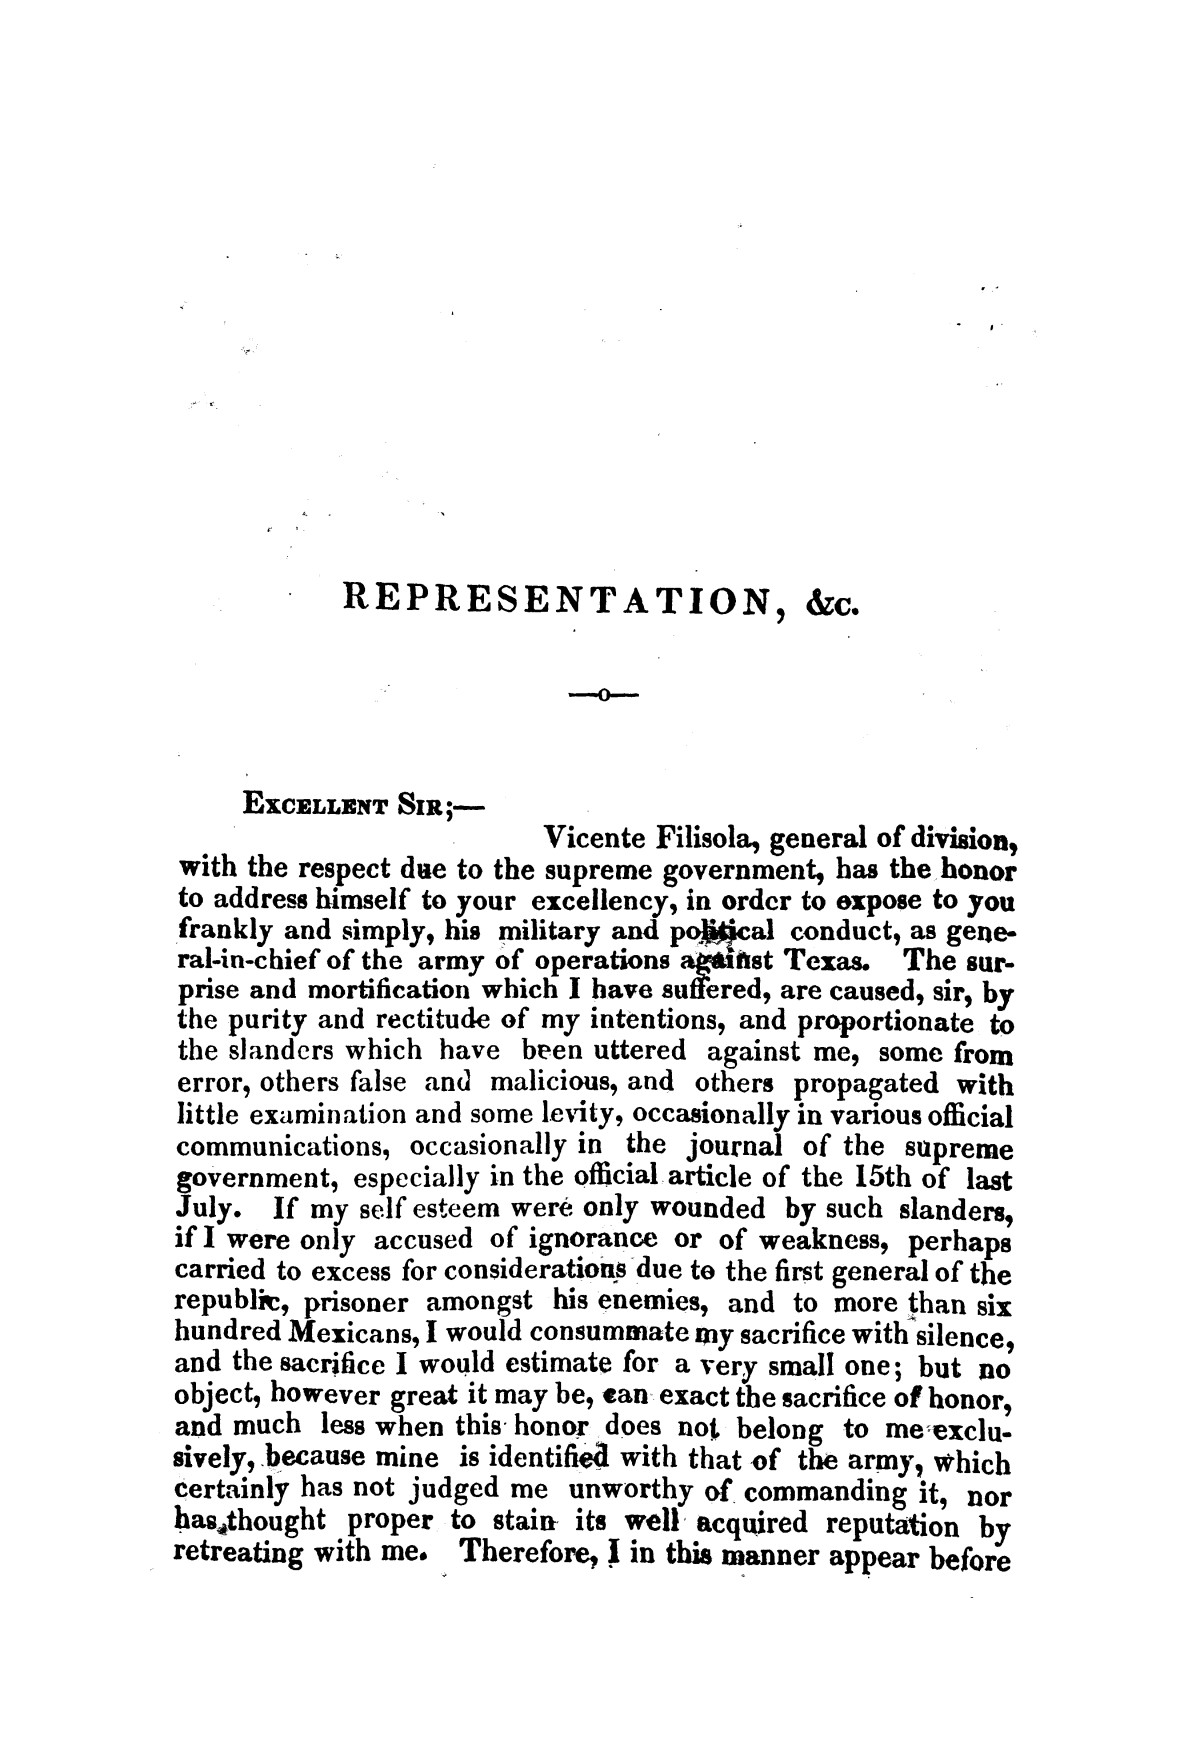 Evacuation of Texas : translation of the Representation addressed to the supreme government / by Vicente Filisola, in defence of his honor, and explanation of his operations as commander-in-chief of the army against Texas.                                                                                                      [Sequence #]: 6 of 72